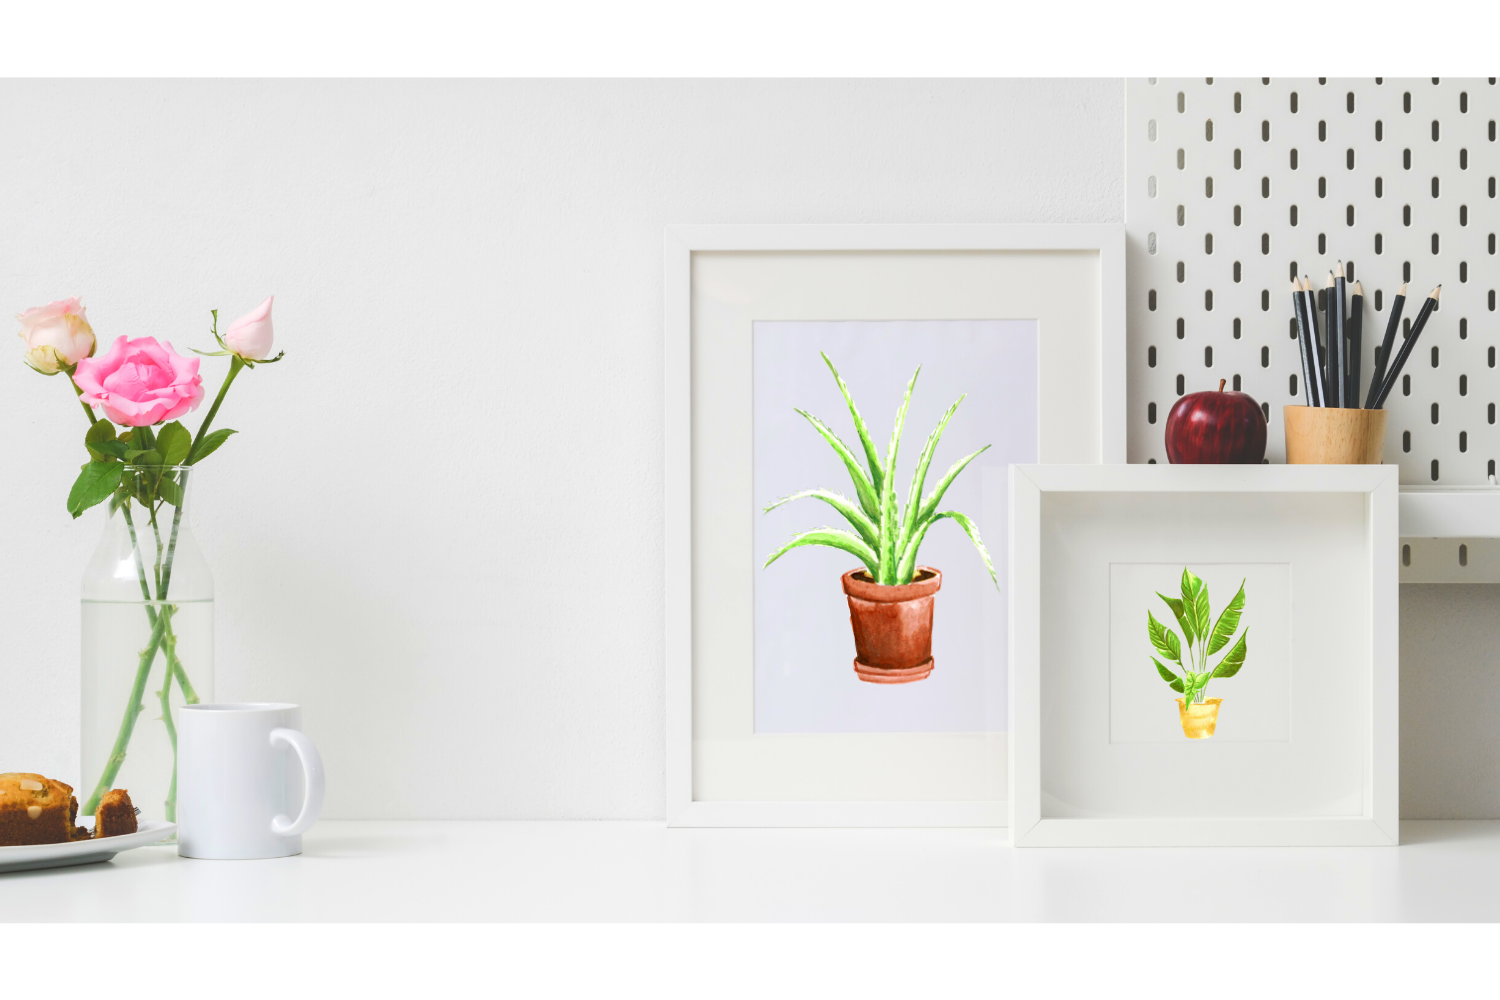 10 Indoor Plants Watercolor Clipart, Garden & Cactus Decor example image 6